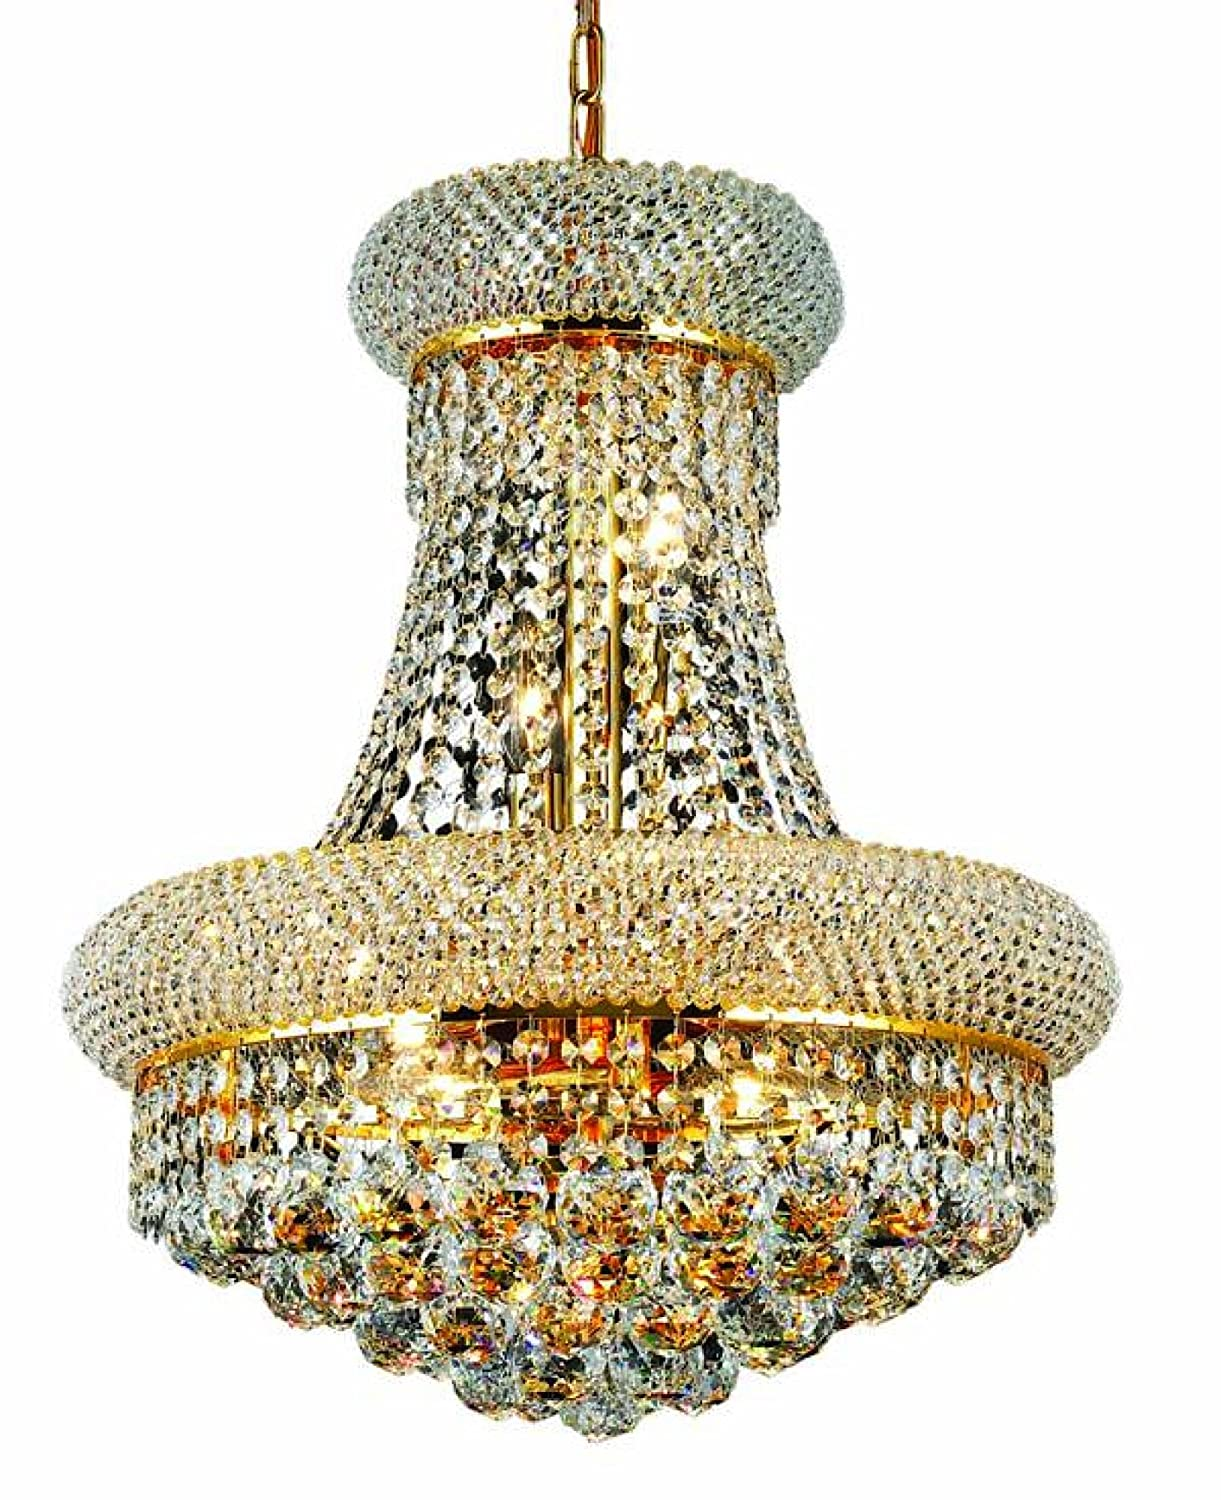 Elegant lighting 1800d16grc primo 20 inch high 8 light chandelier elegant lighting 1800d16grc primo 20 inch high 8 light chandelier gold finish with crystal clear royal cut rc crystal amazon mozeypictures Gallery